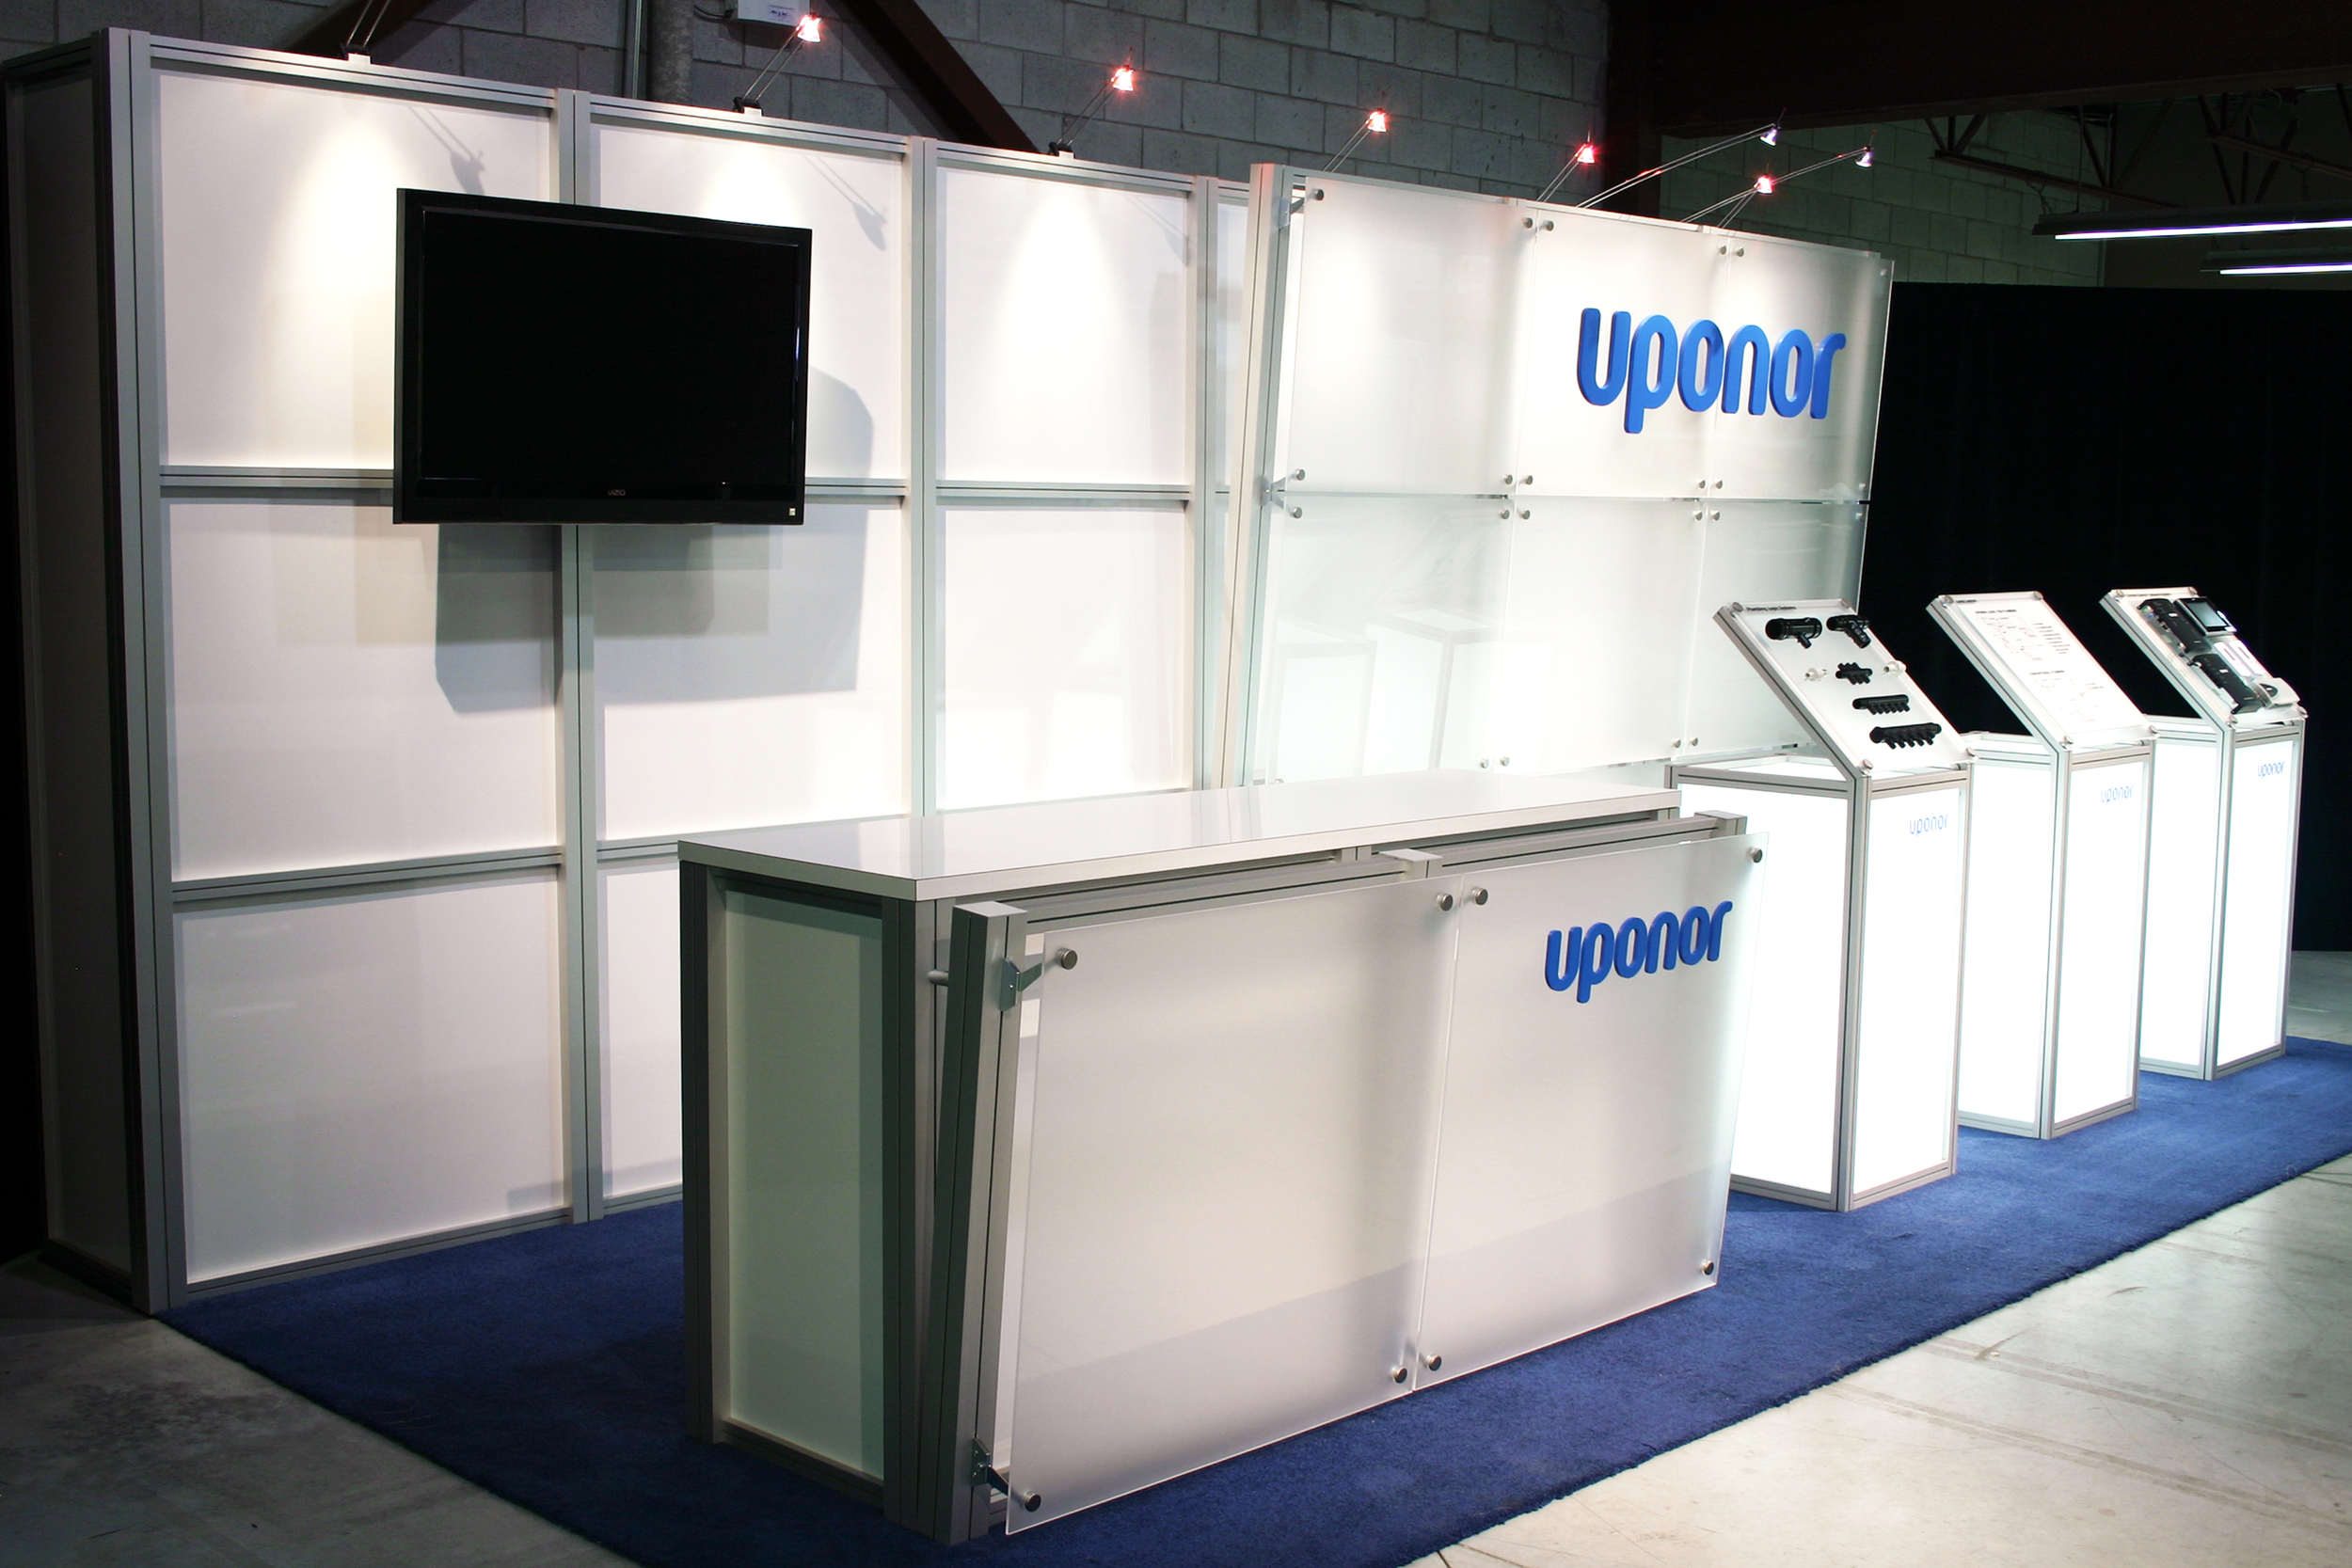 This modern 10' x 20' booth showcases product on glowing pedestals and a clean backwall highlighting their branding